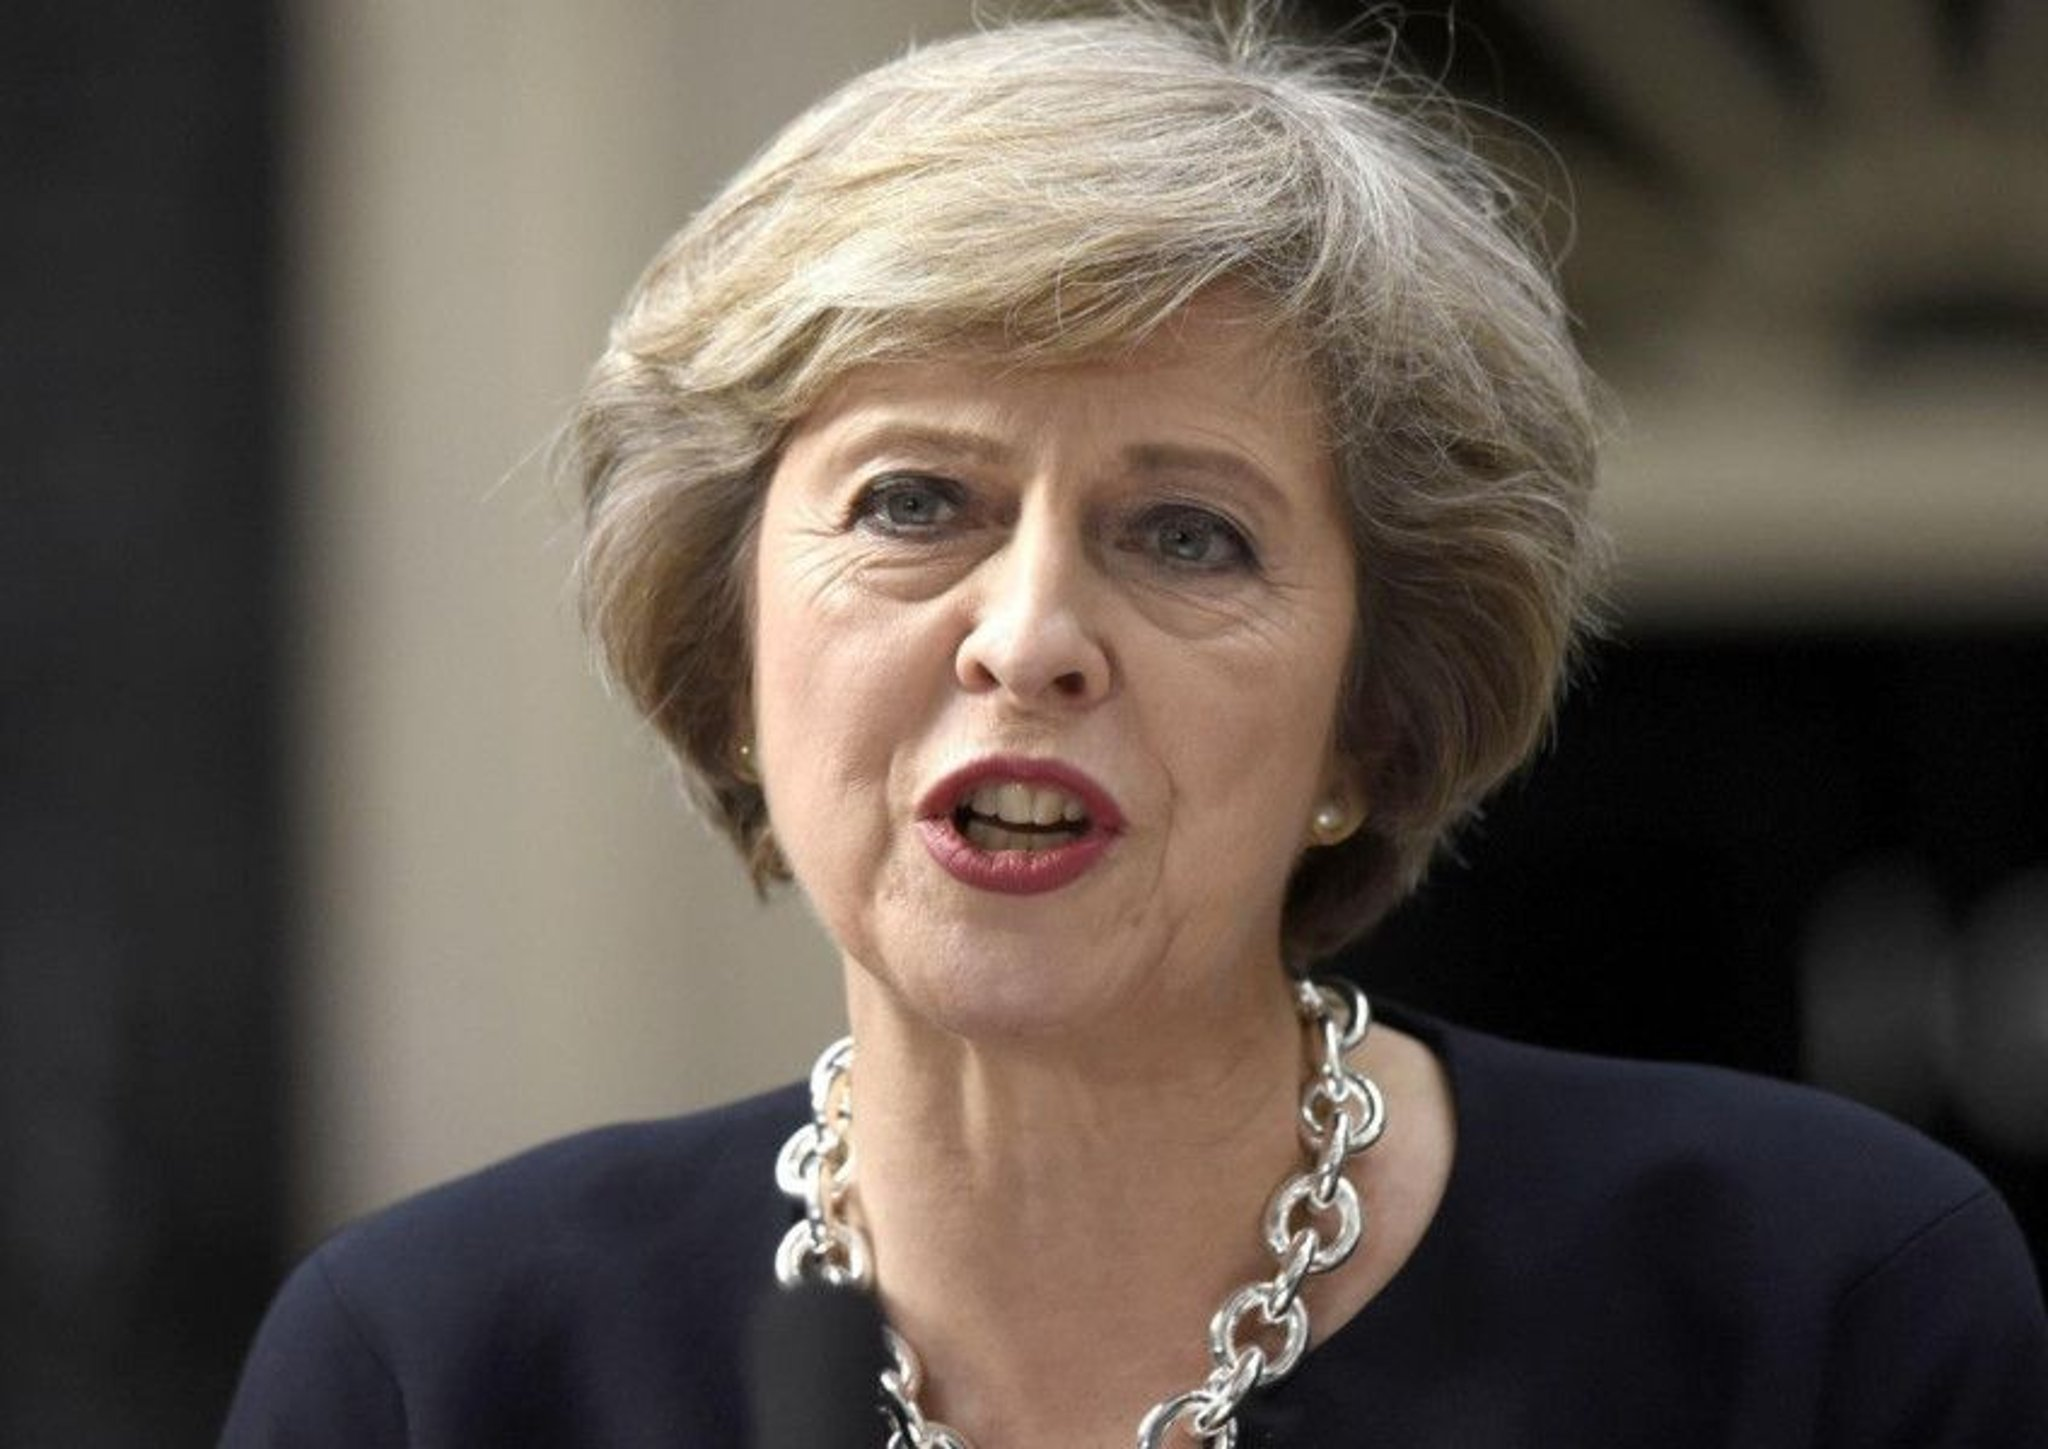 WATCH: Theresa May supports local newspapers fight